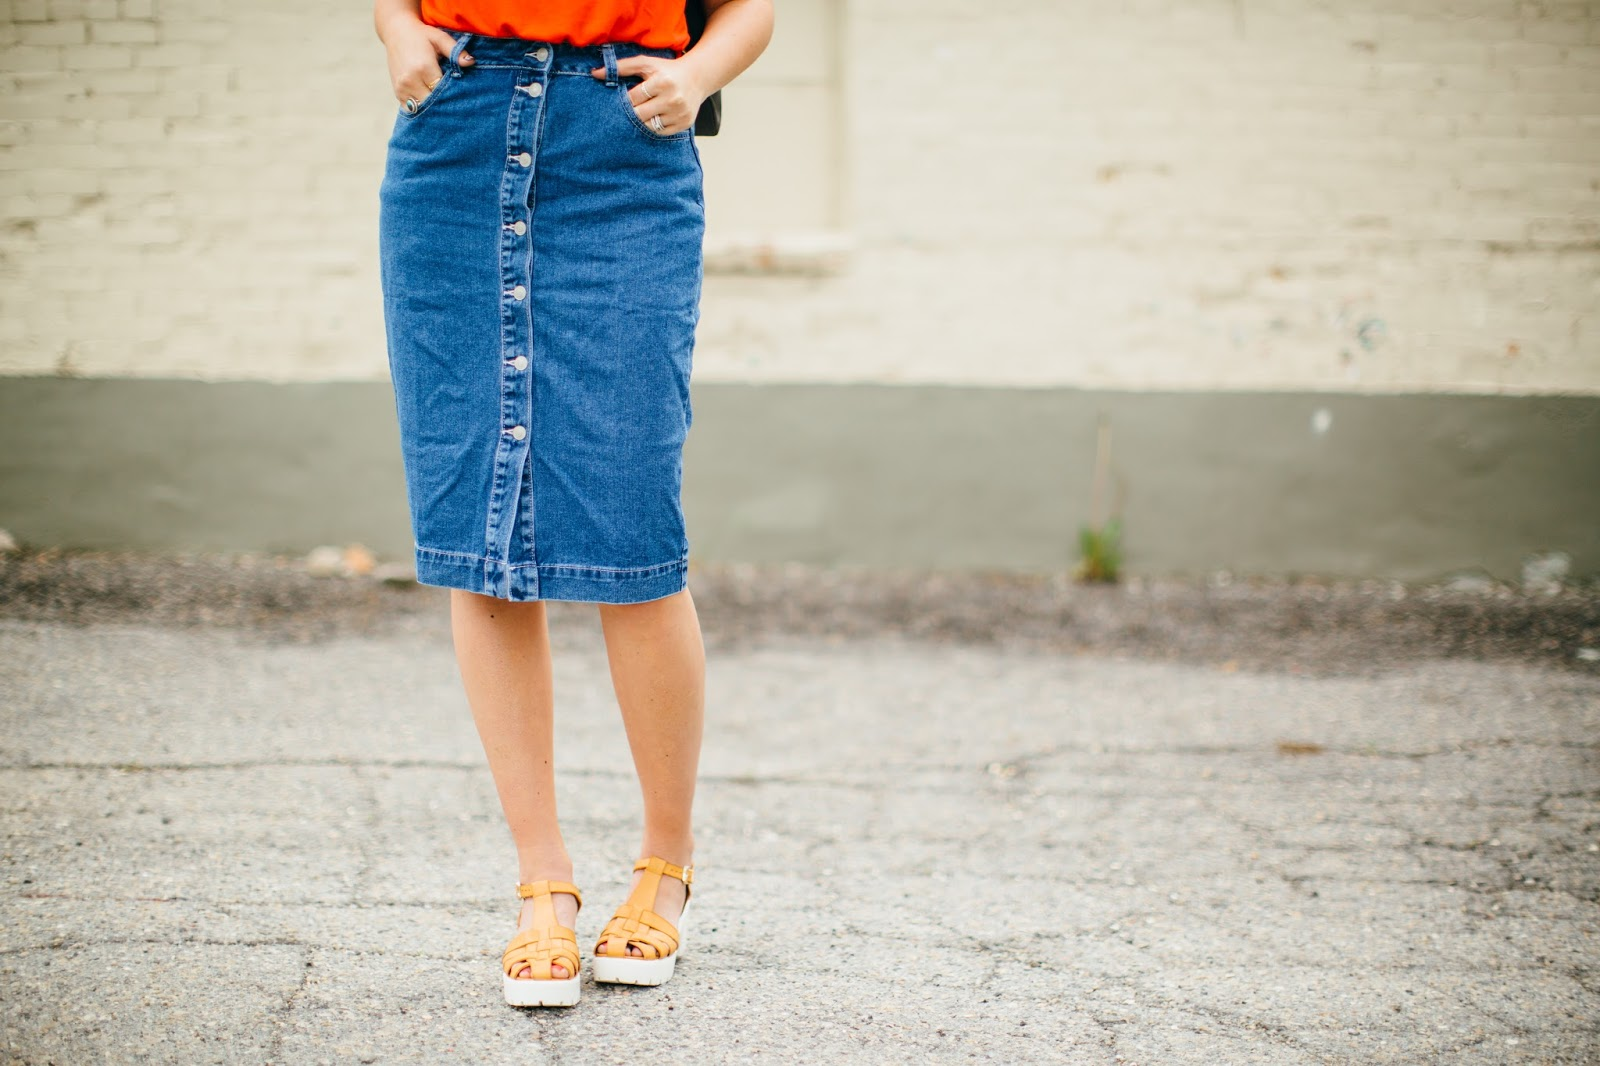 ASOS, ASOS denim skirt, Jean skirt